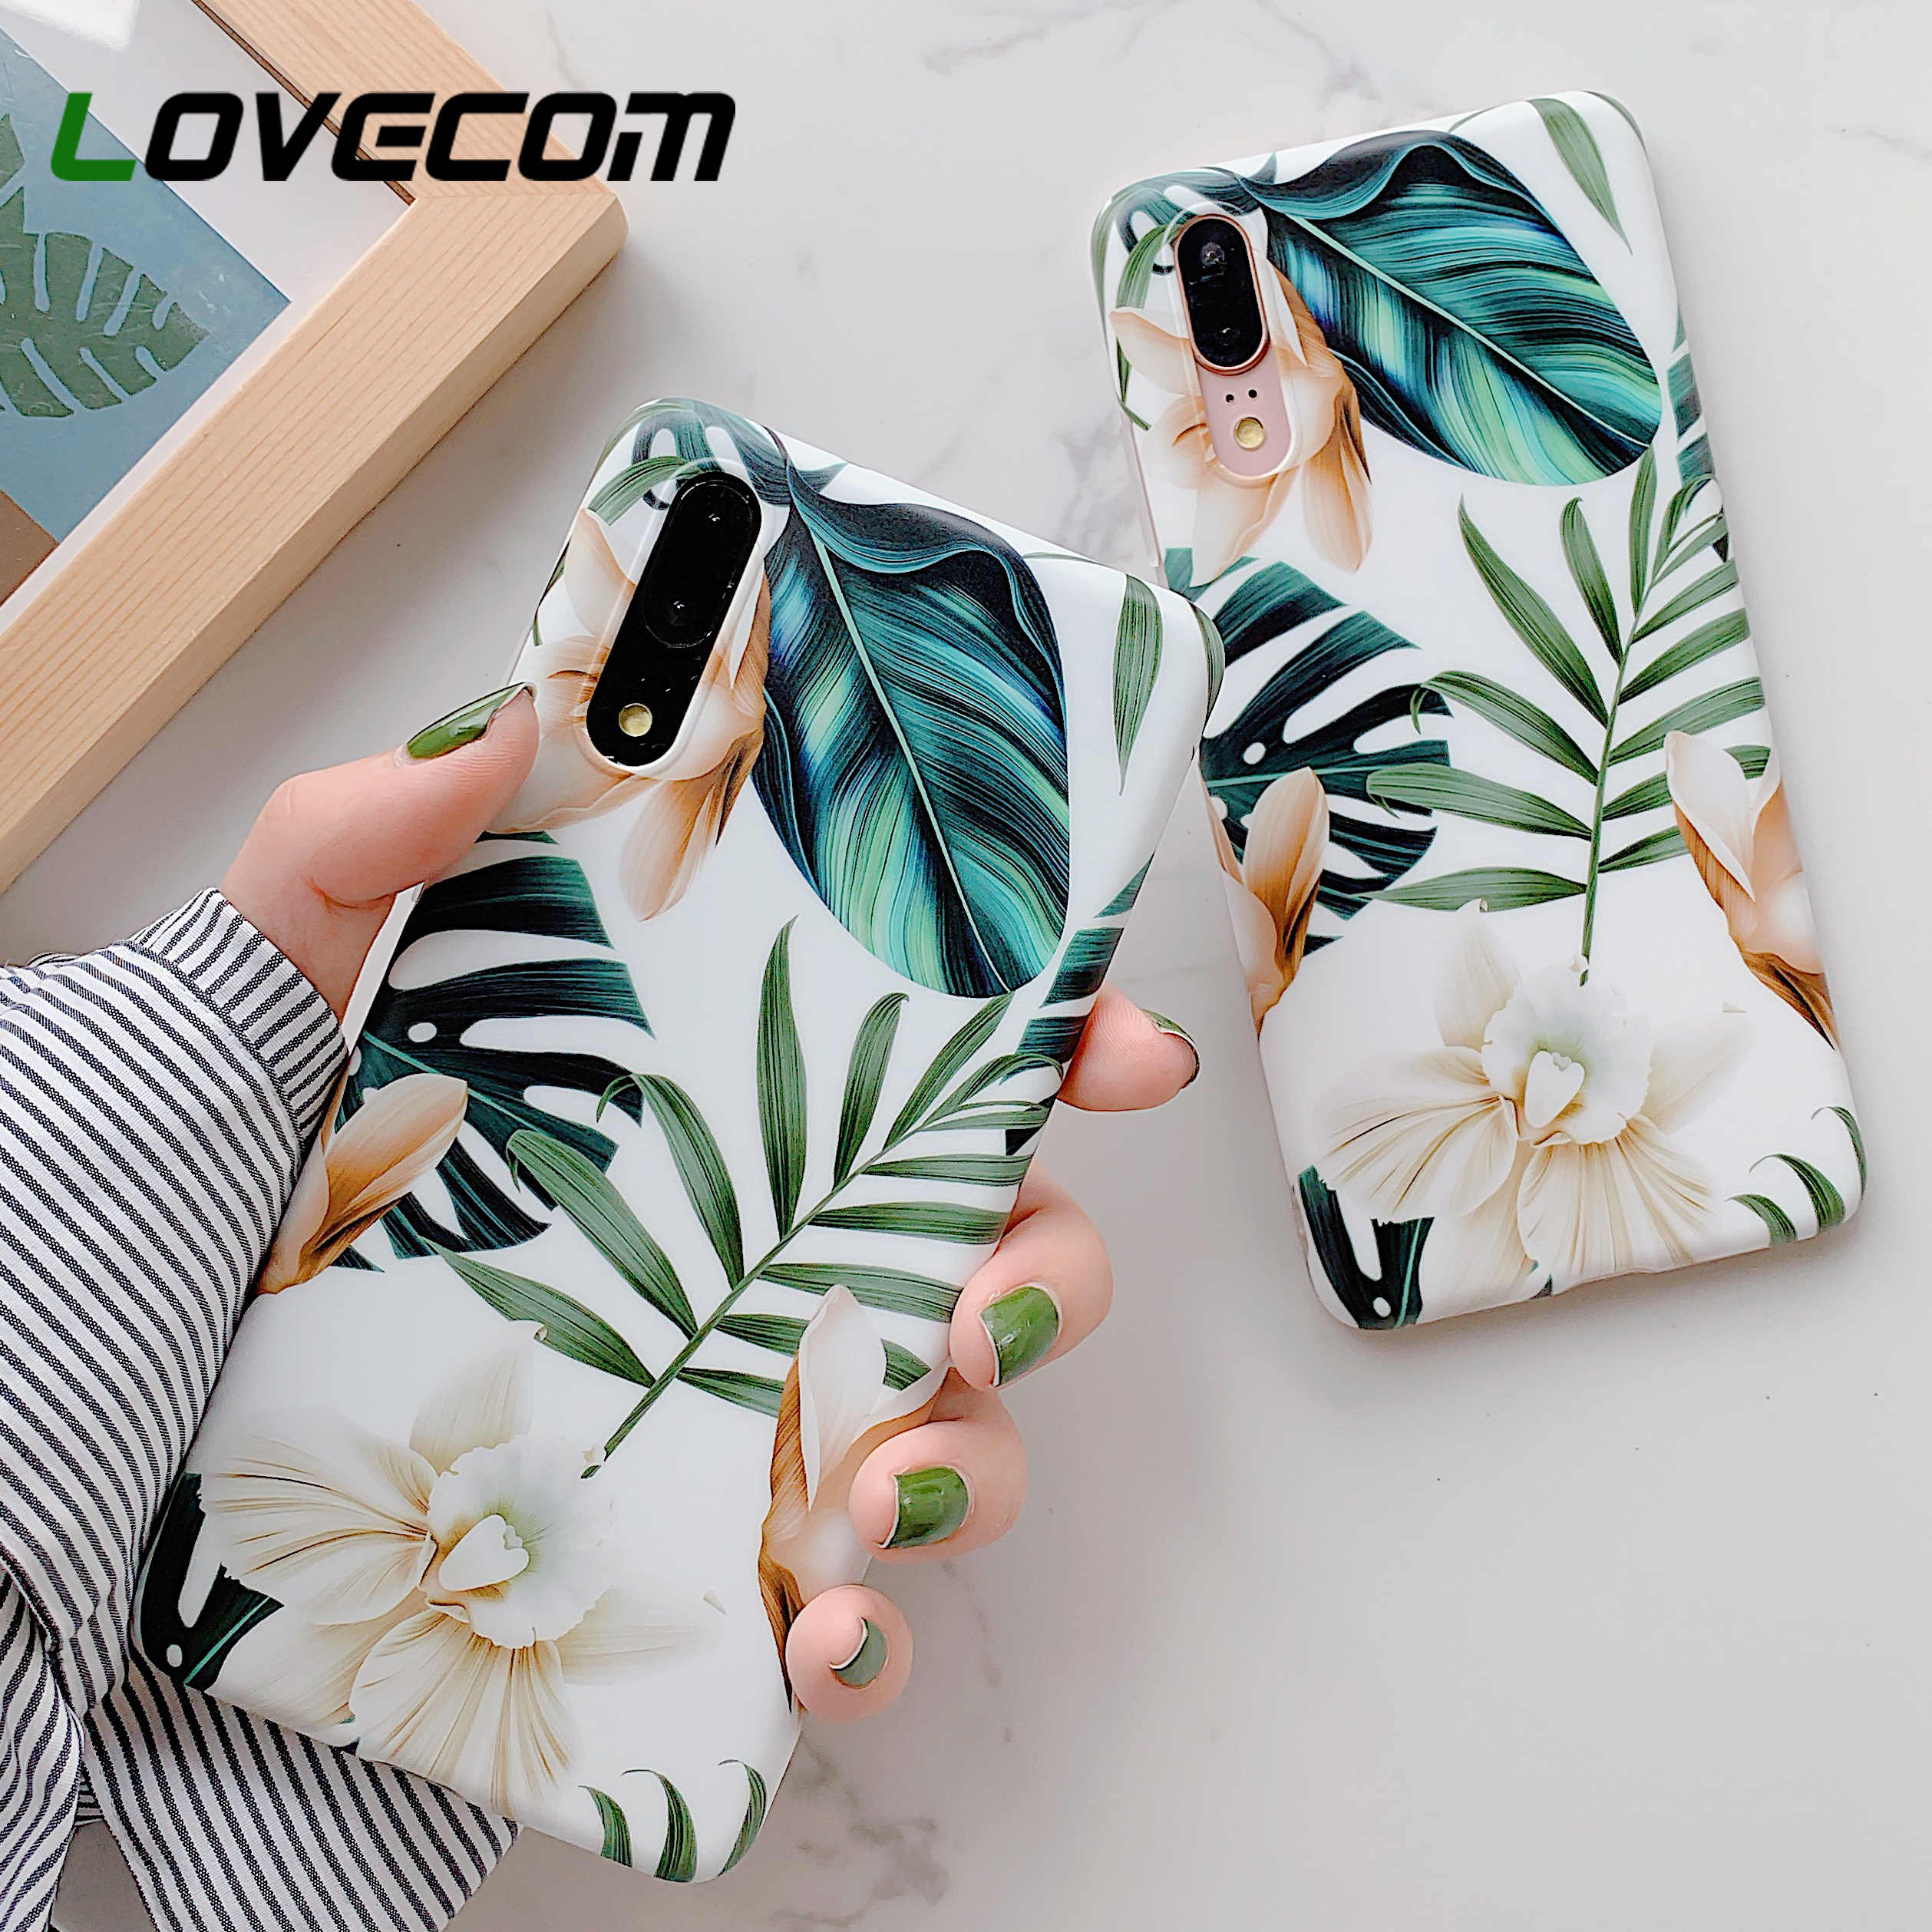 LOVECOM Hot Vintage Flower Banana Leaf Phone Cases For Huawei P20 P30 Pro Lite Mate 20 Lite Soft IMD Full Body Back Cover Gifts